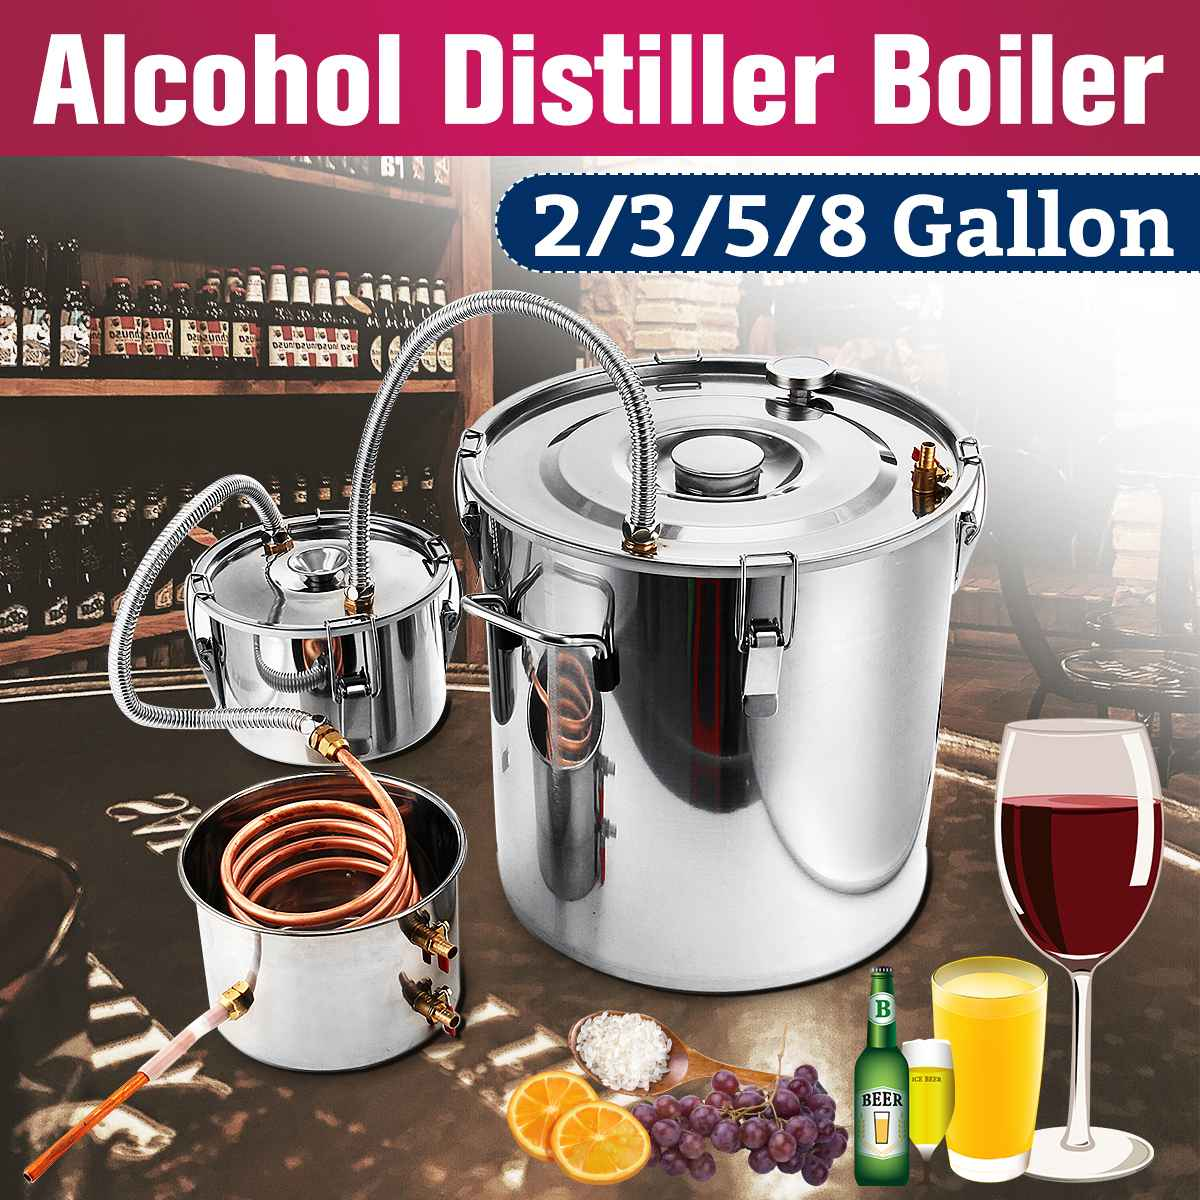 2 3 5 8 Gallon DIY Home Brew Distiller Moonshine Alcohol Still Stainless Copper Water Wine